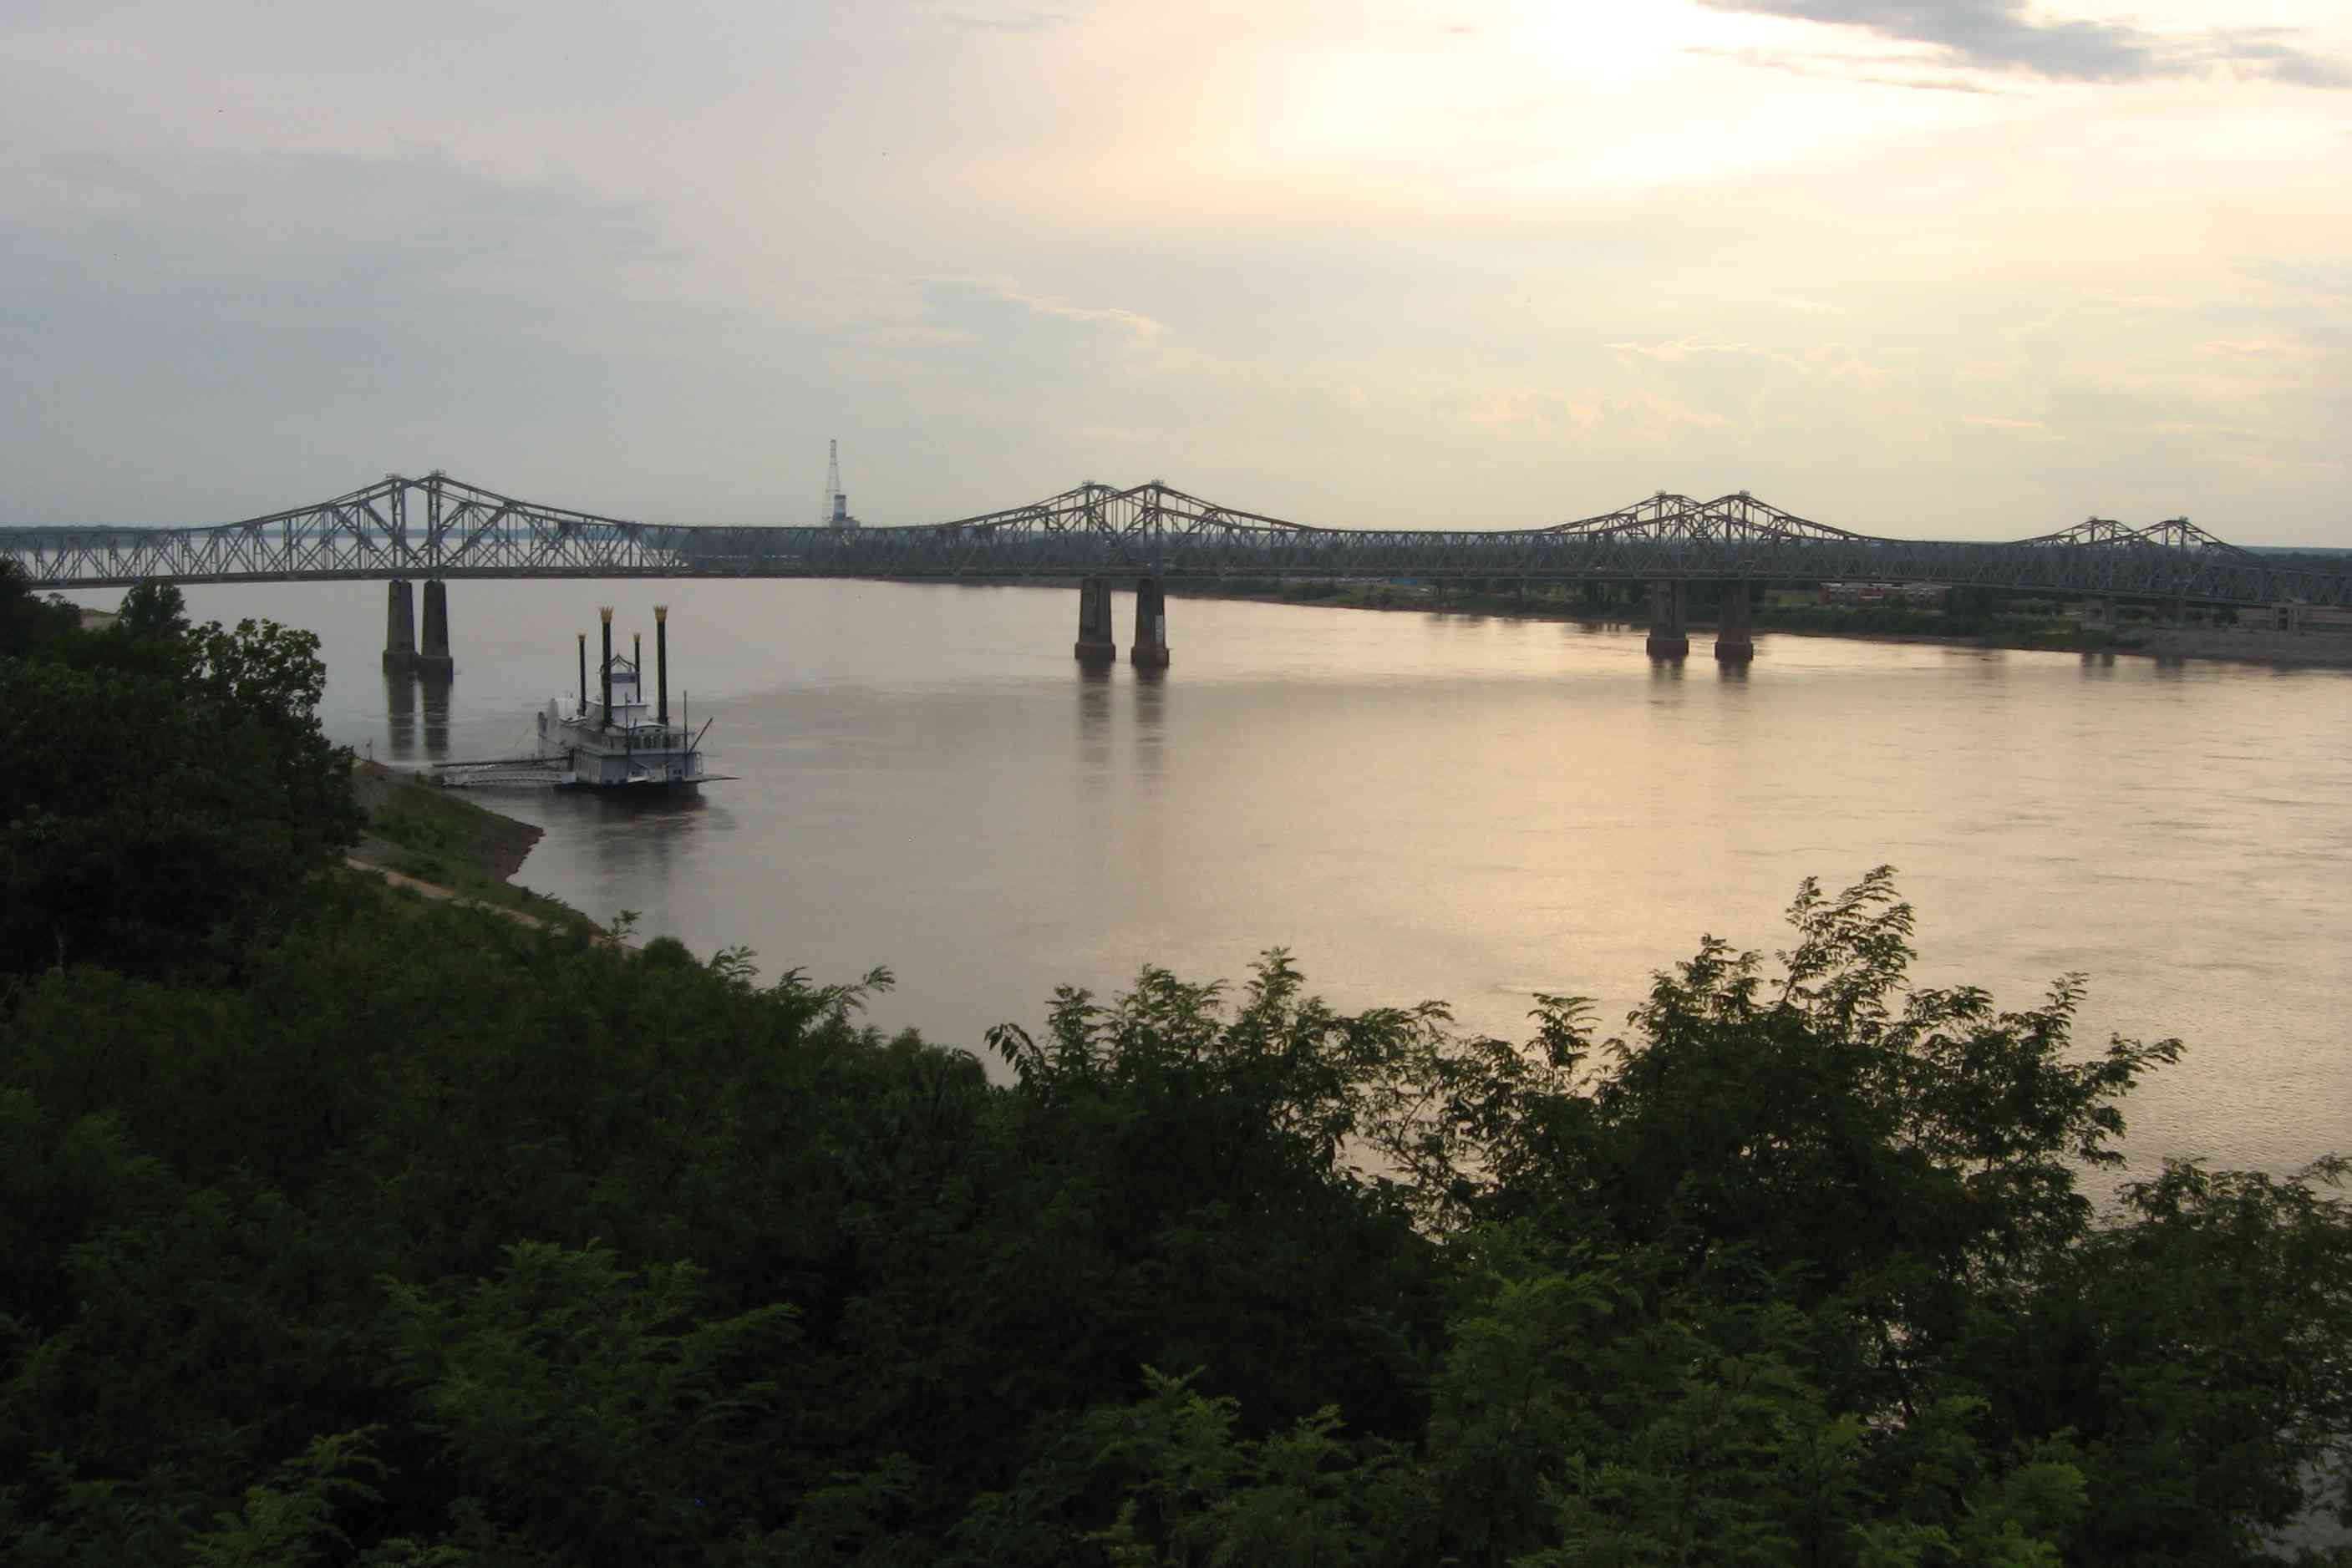 The Mississippi River in North America